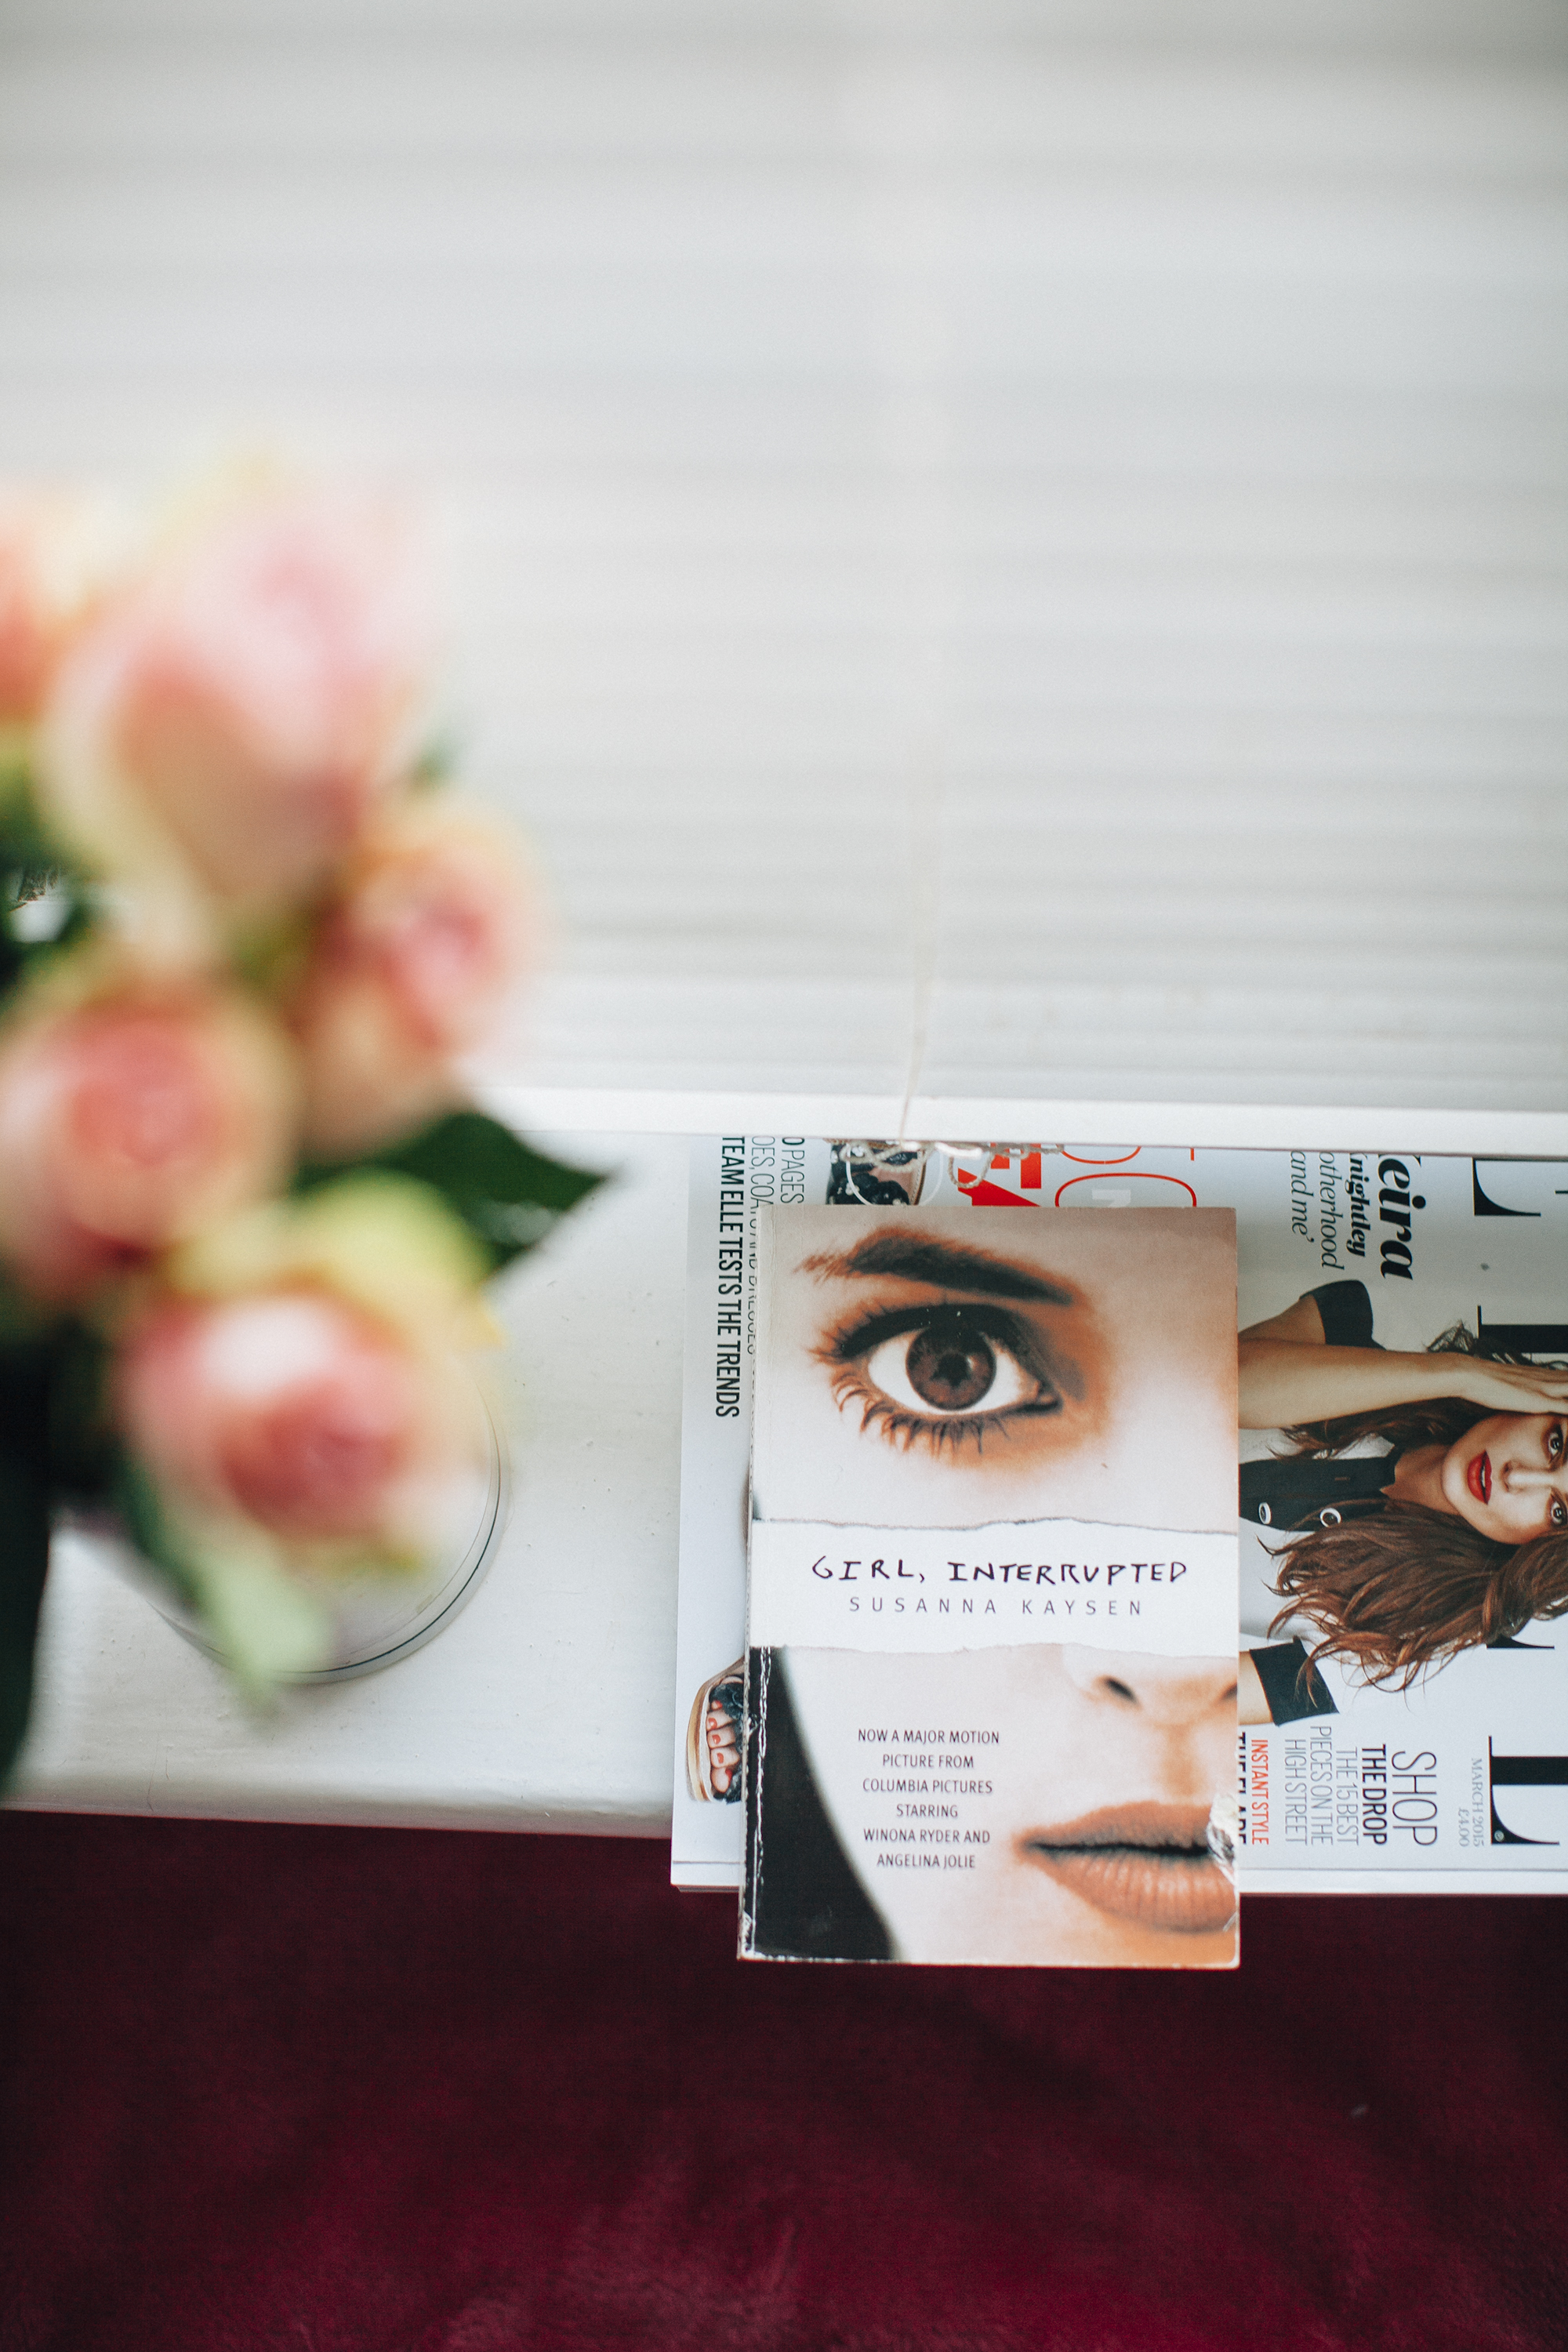 katie-leask-photography-la-coco-noire-reading-list-book-009